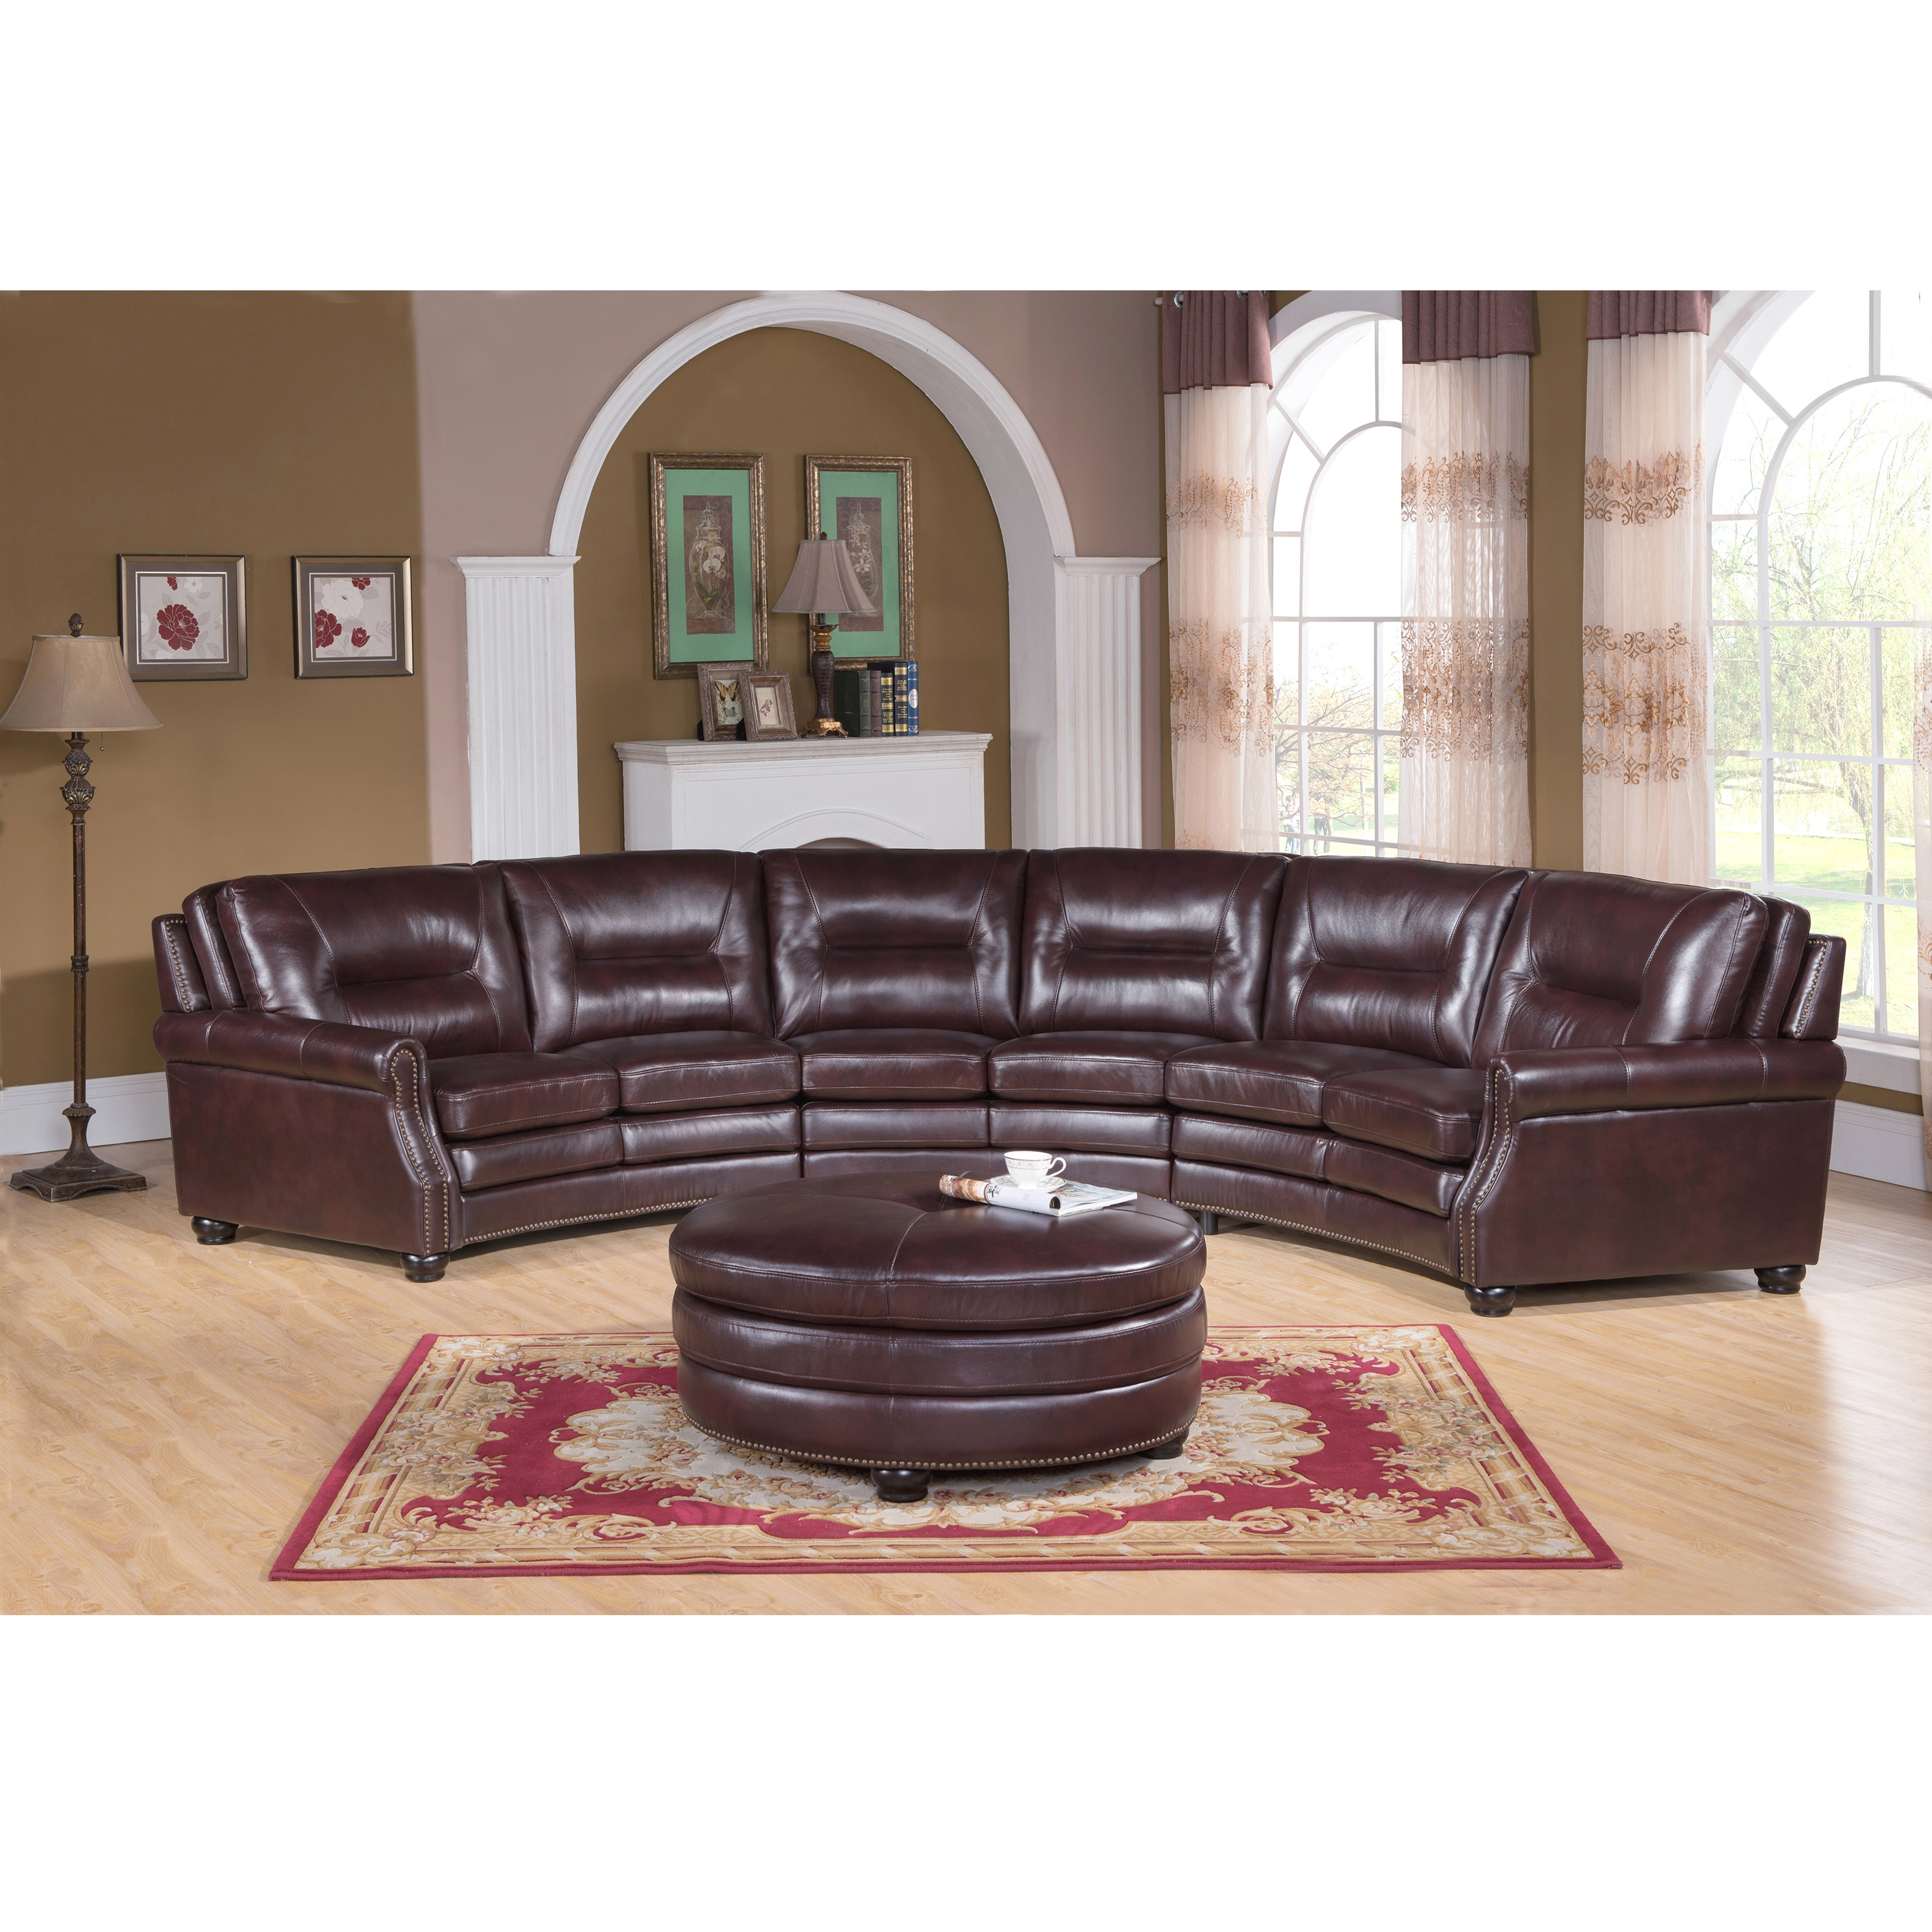 Centro Chocolate Brown Curved Top Grain Leather Sectional Sofa And Ottoman